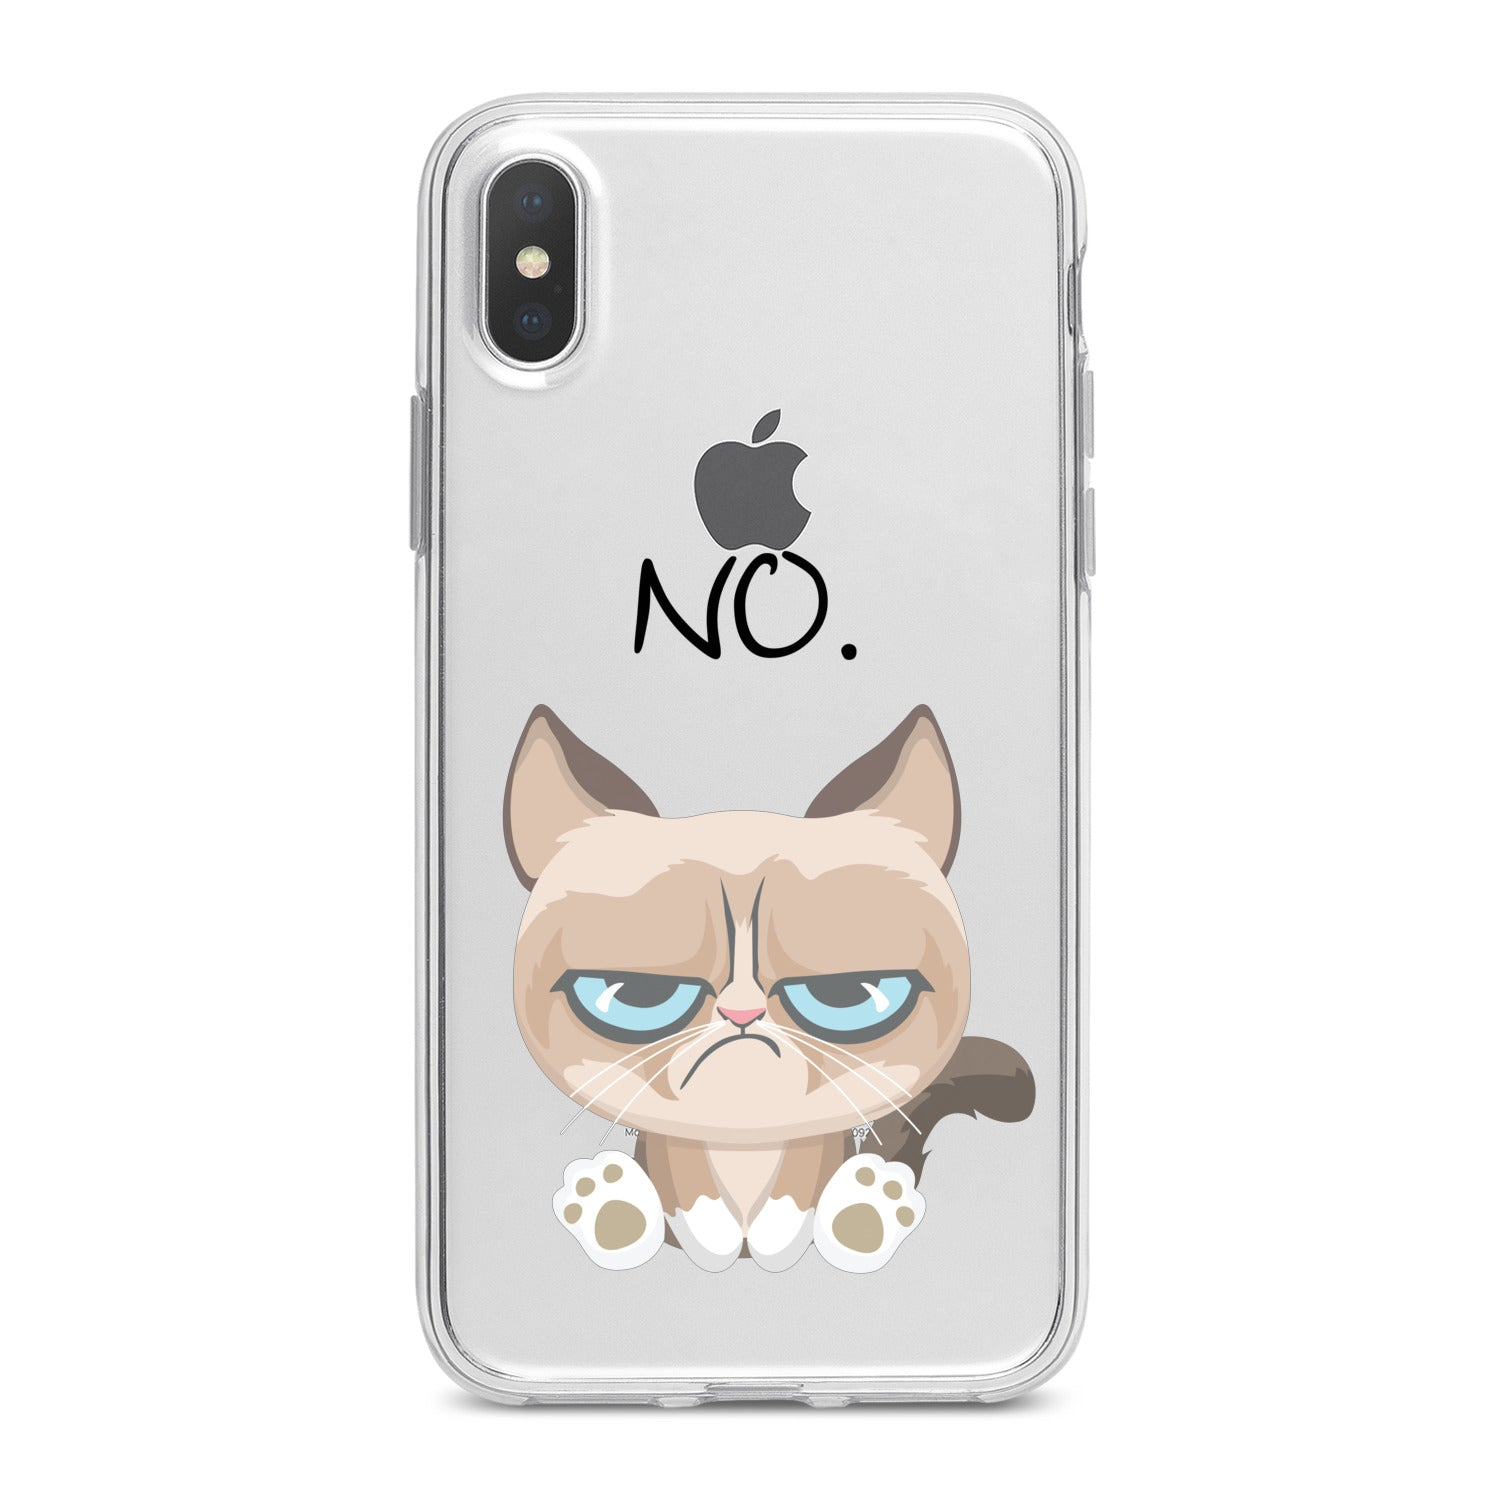 Lex Altern Grumpy Feline Phone Case for your iPhone & Android phone.